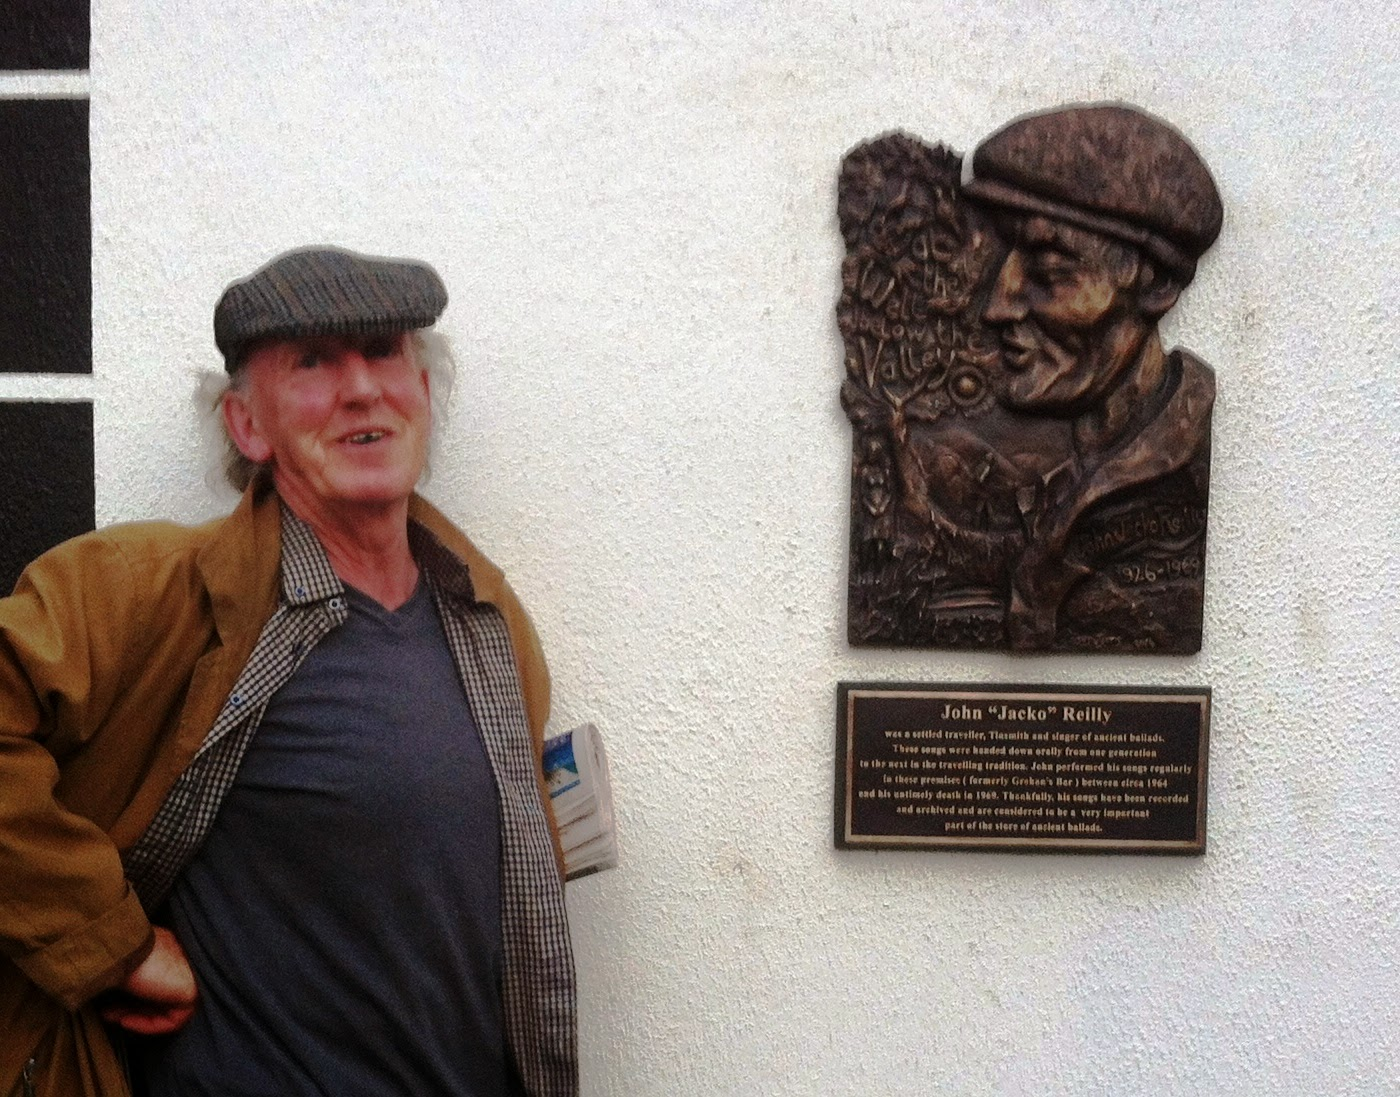 Fergus Lyons with his plaque for John Reilly